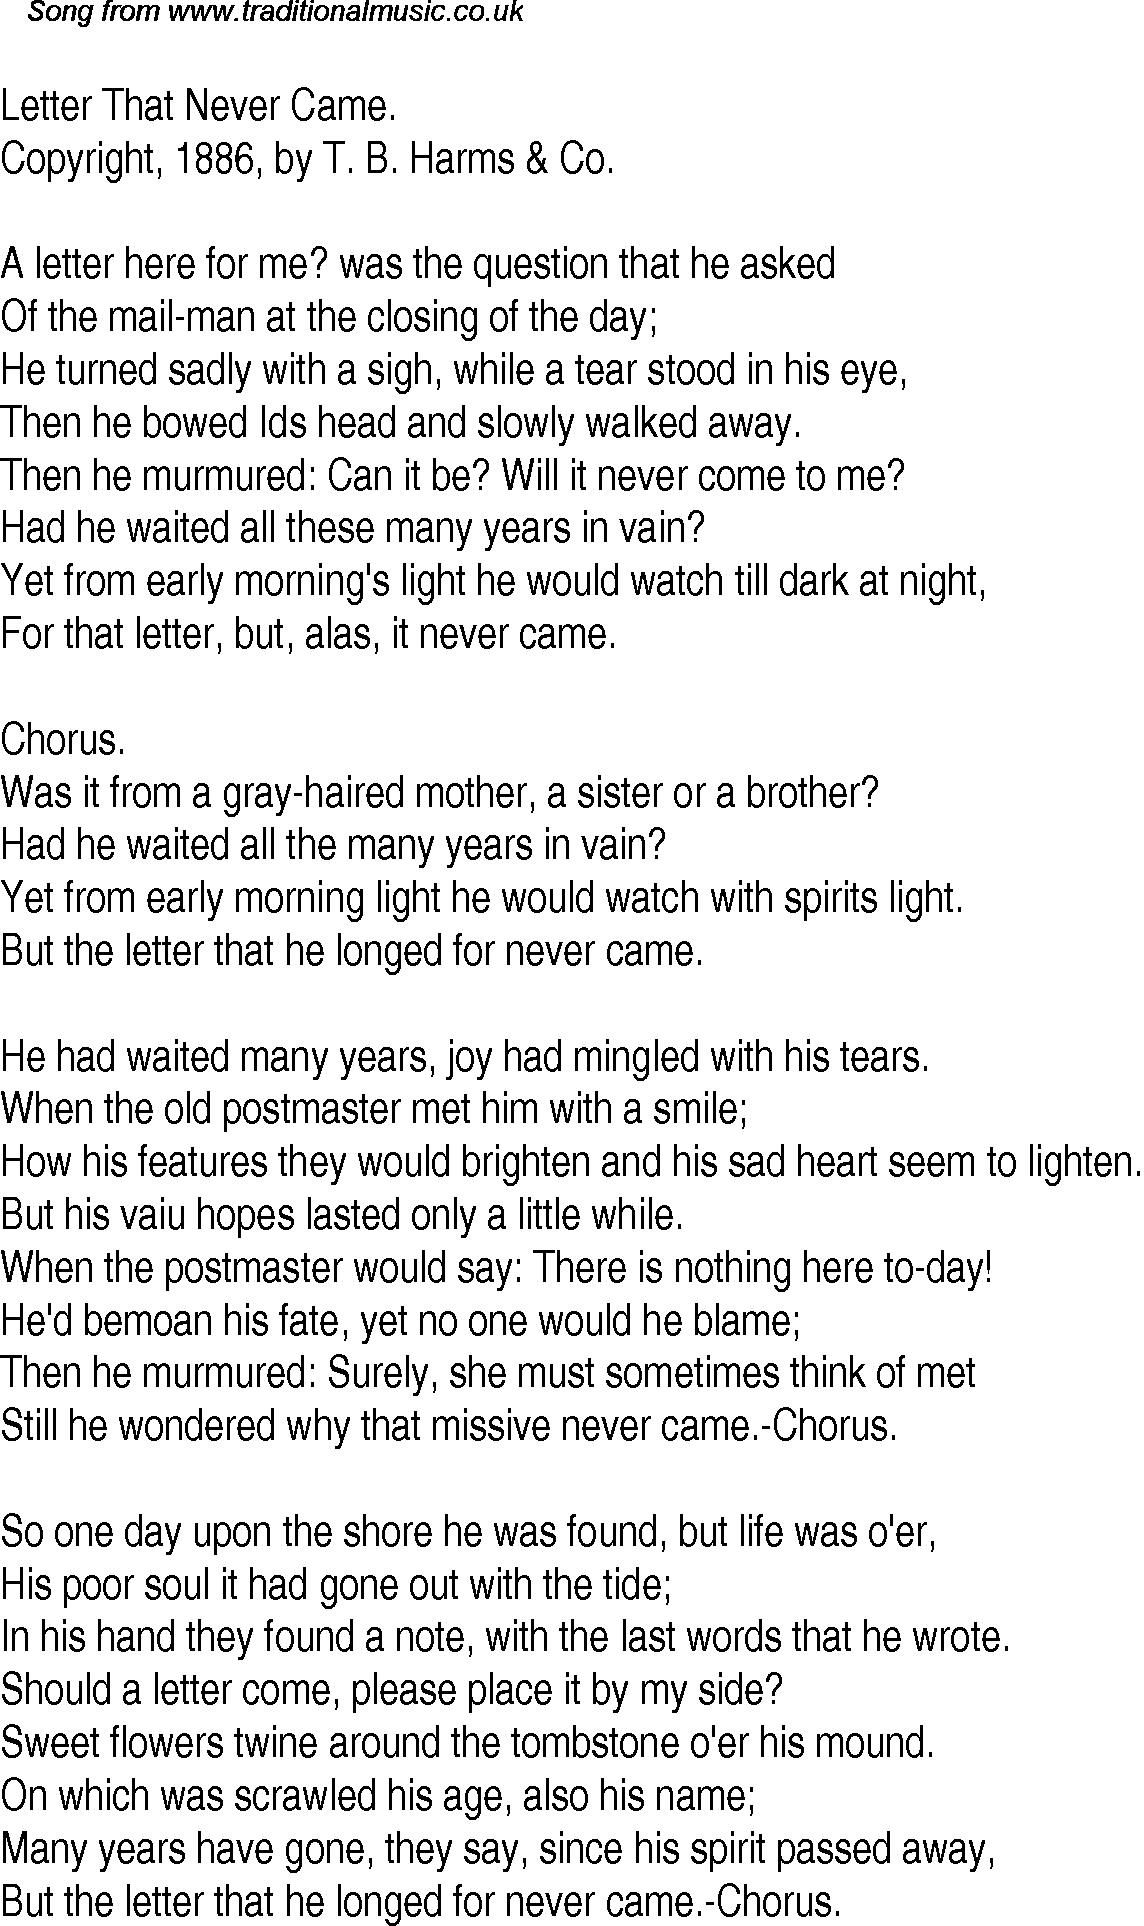 Old Time Song Lyrics for 13 Letter That Never Came